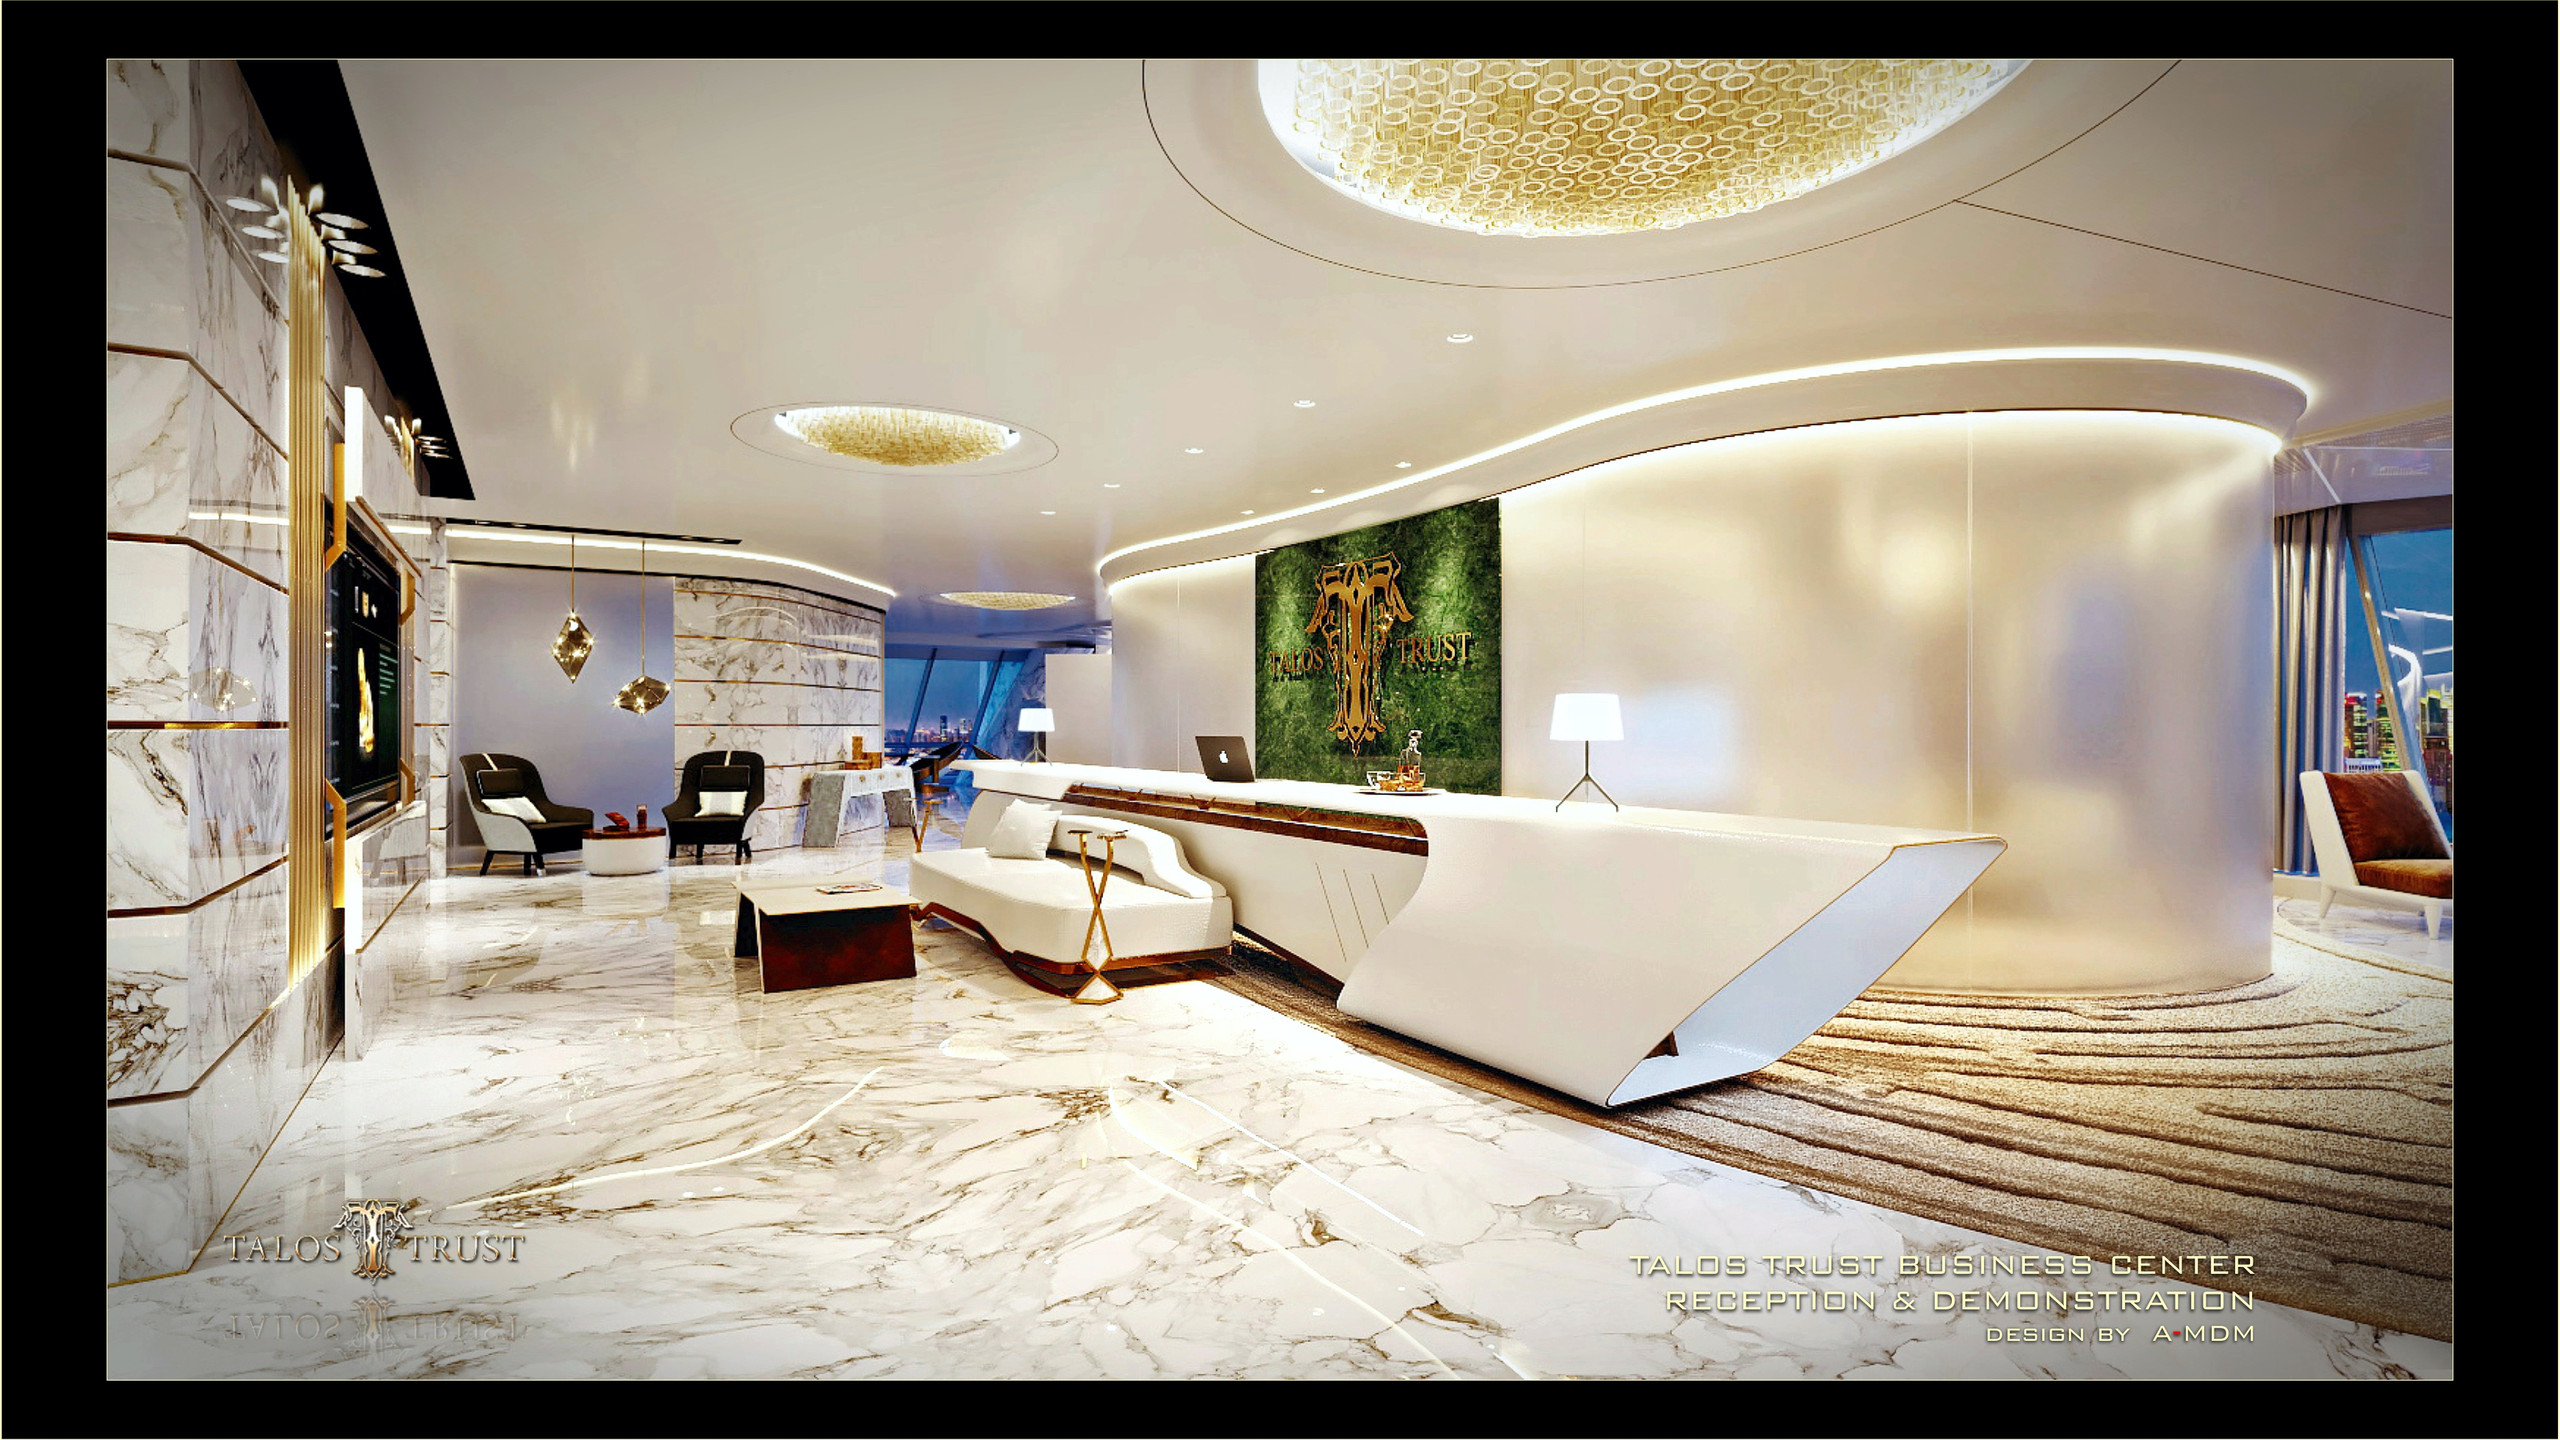 Interior Design of Business Cente